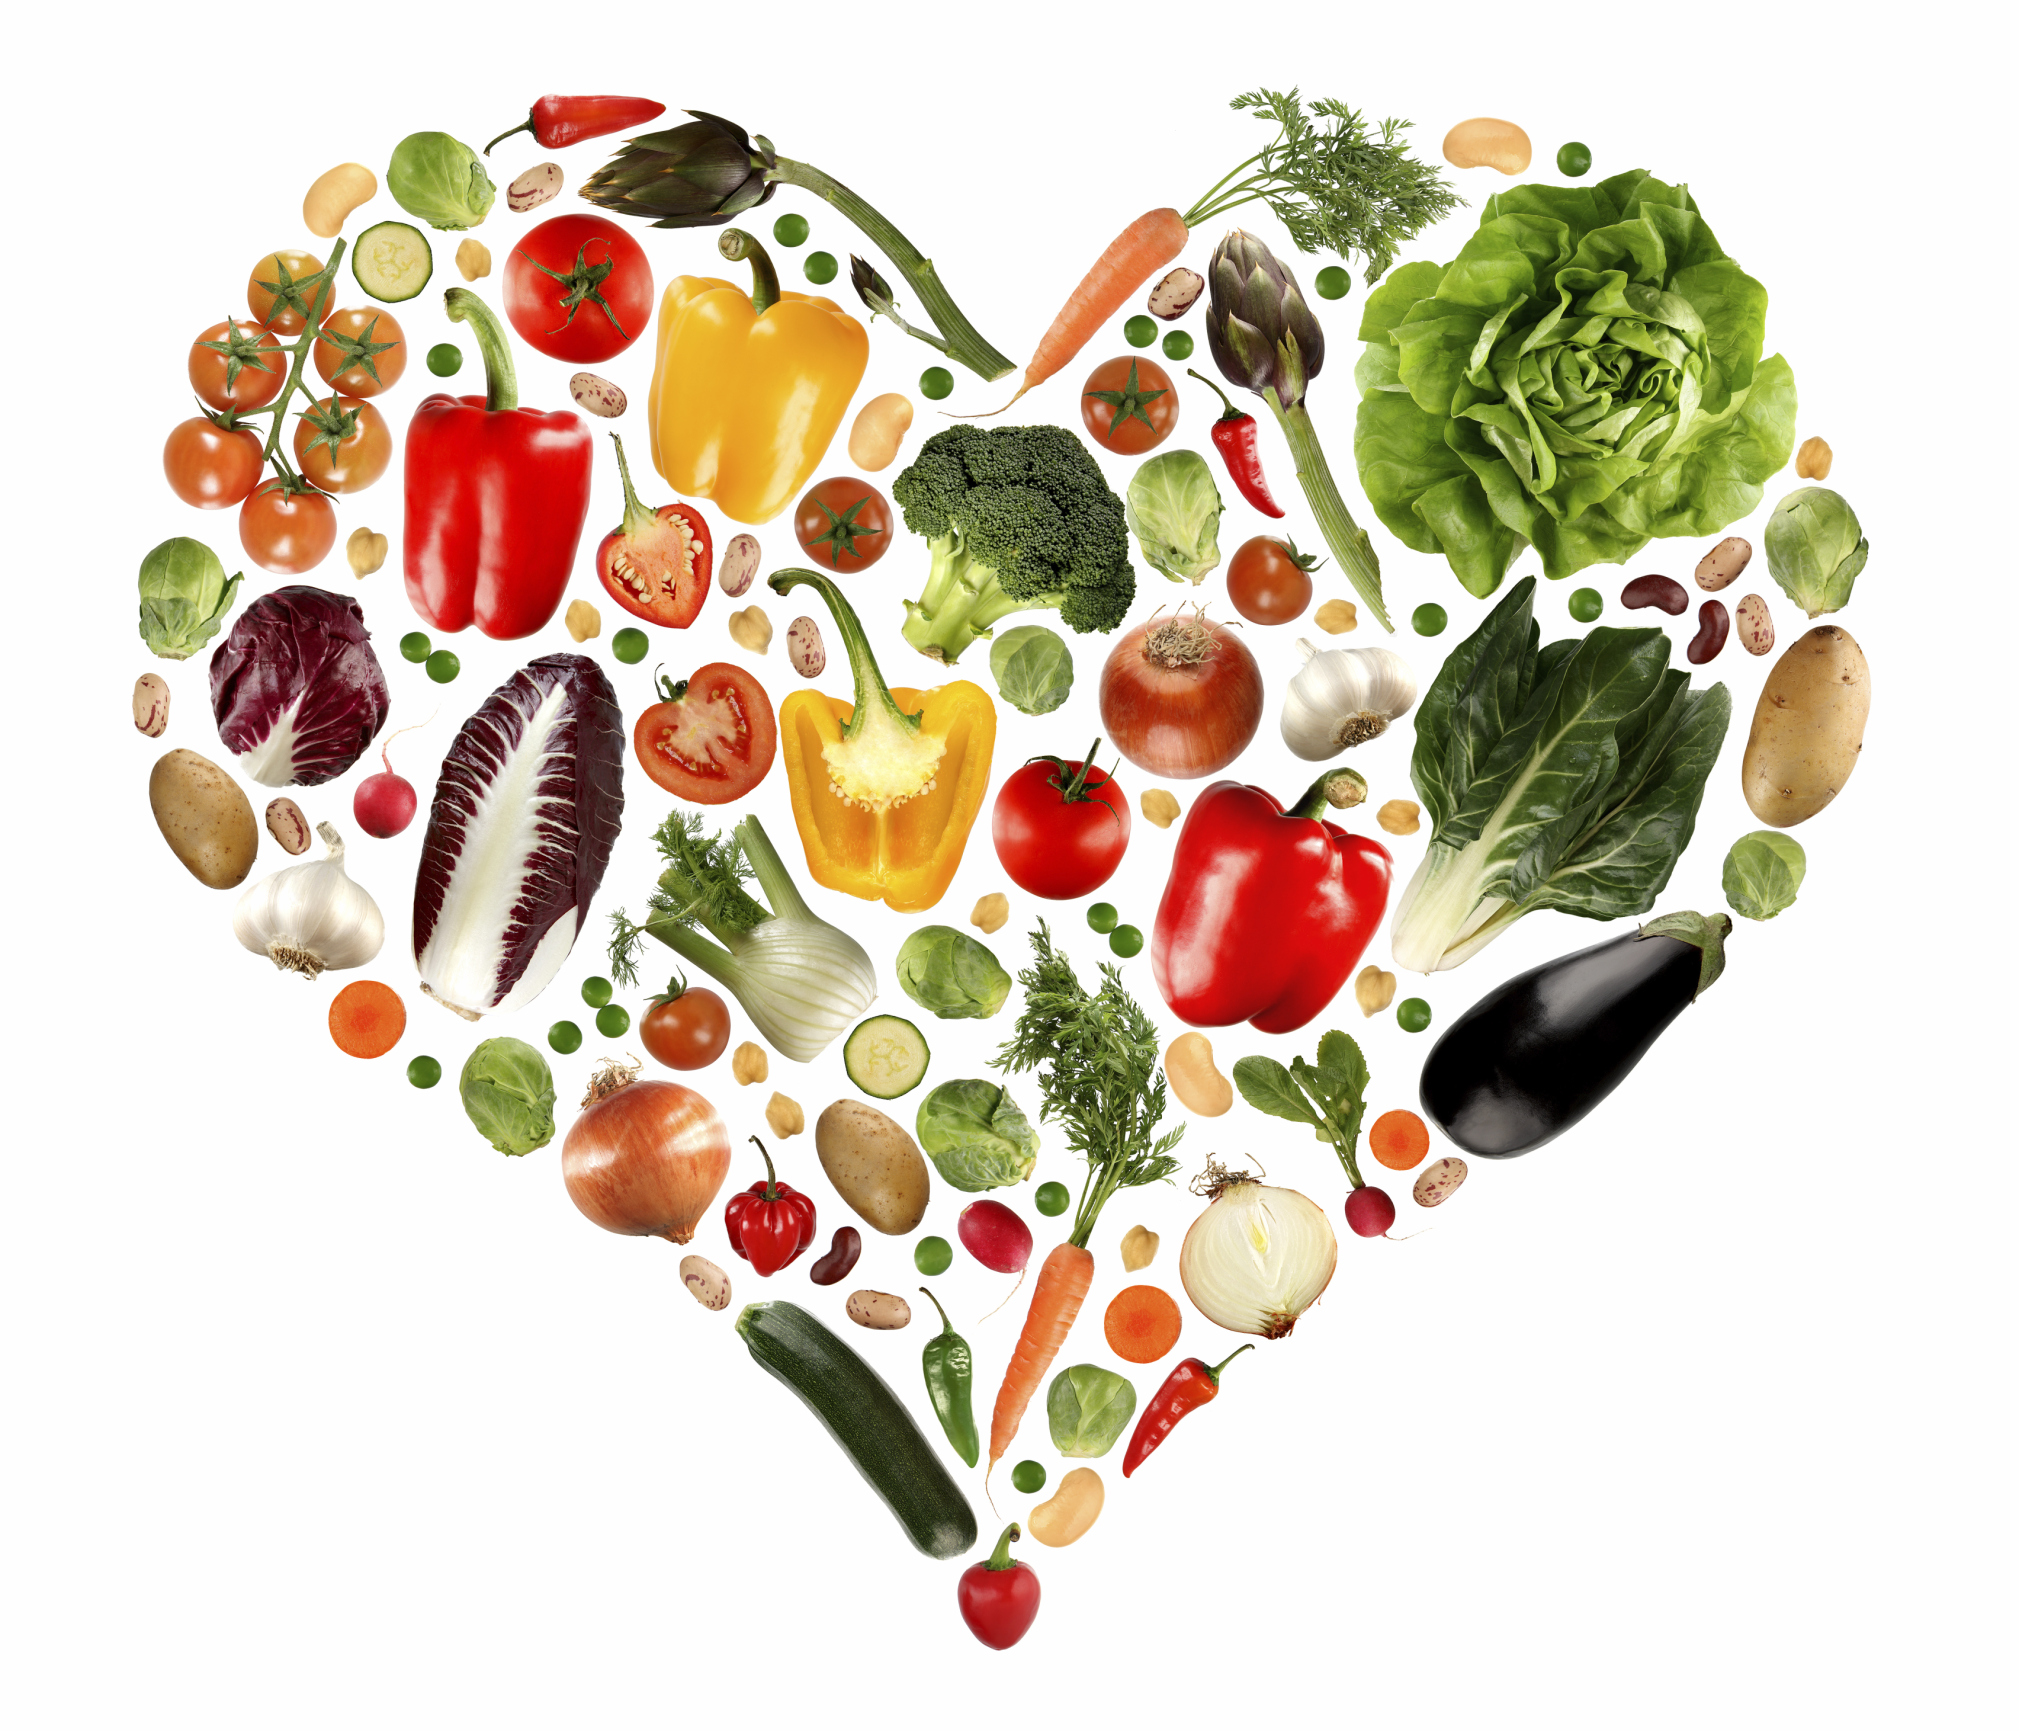 Healthy eating what would you need LIFE unleashed : healthy eating heart from life-unleashed.net size 2019 x 1731 jpeg 1434kB